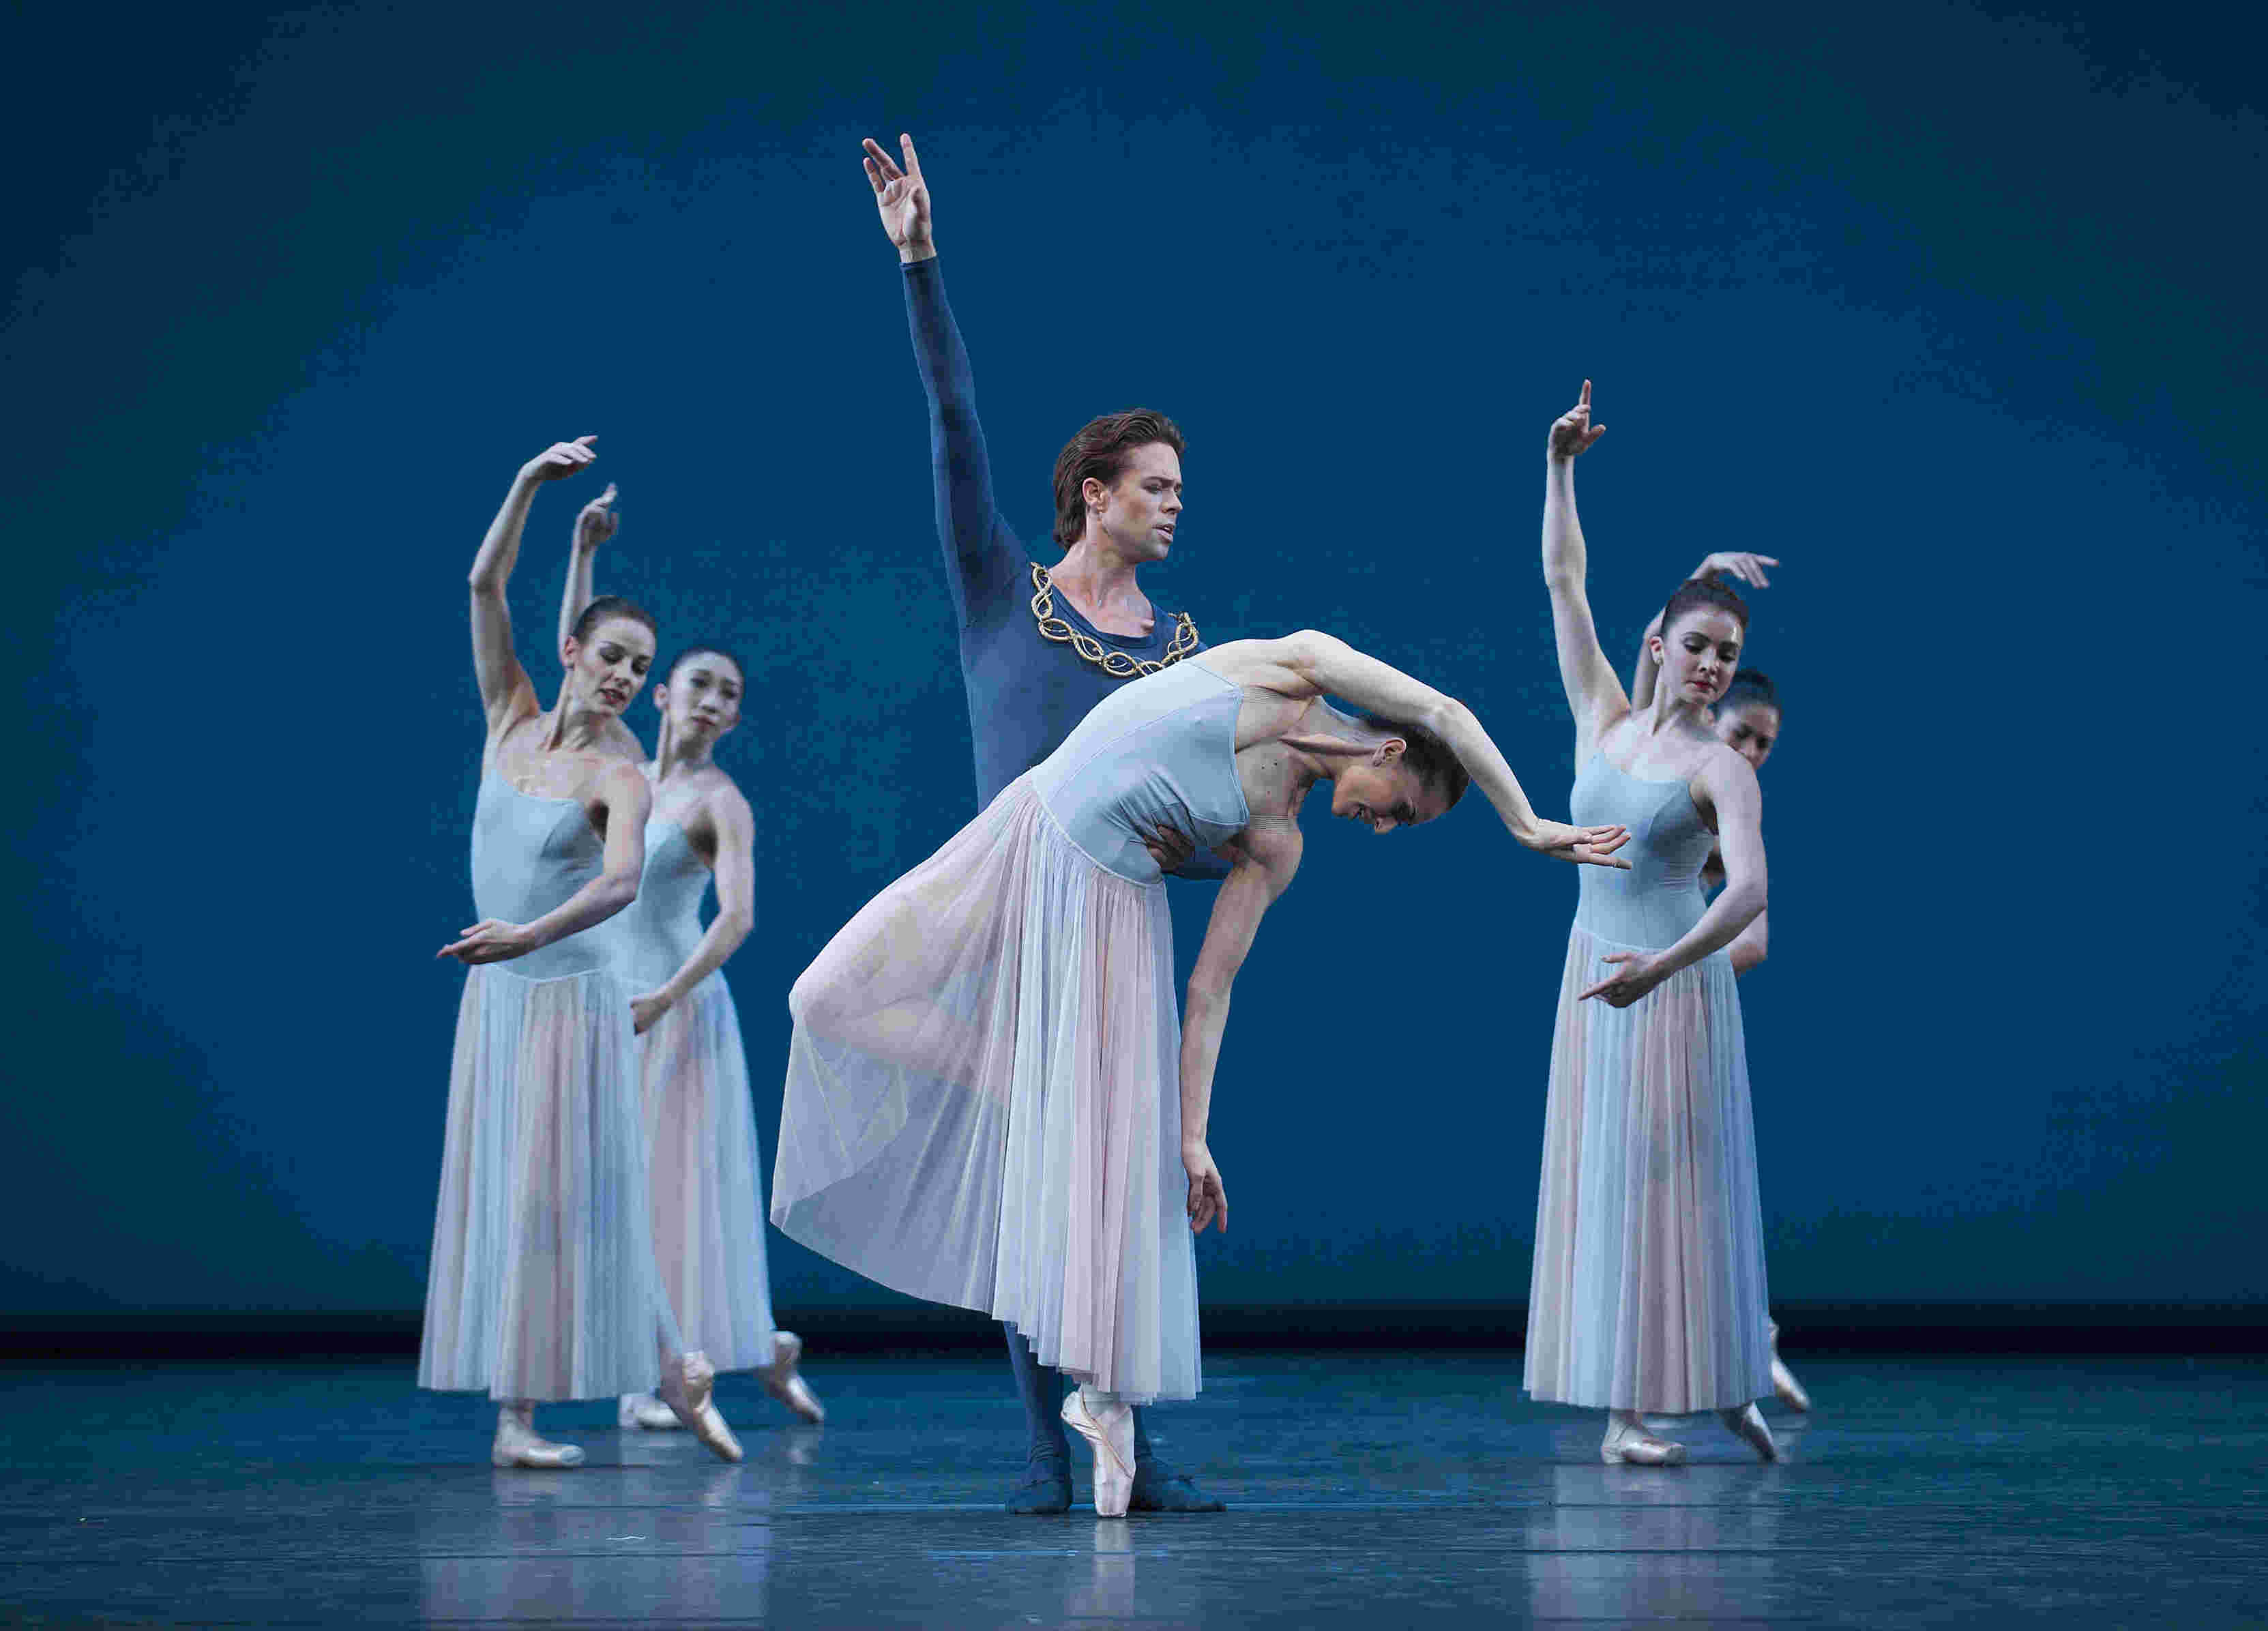 Marianela Nunez and Matthew Golding in George Balanchine's Serenade